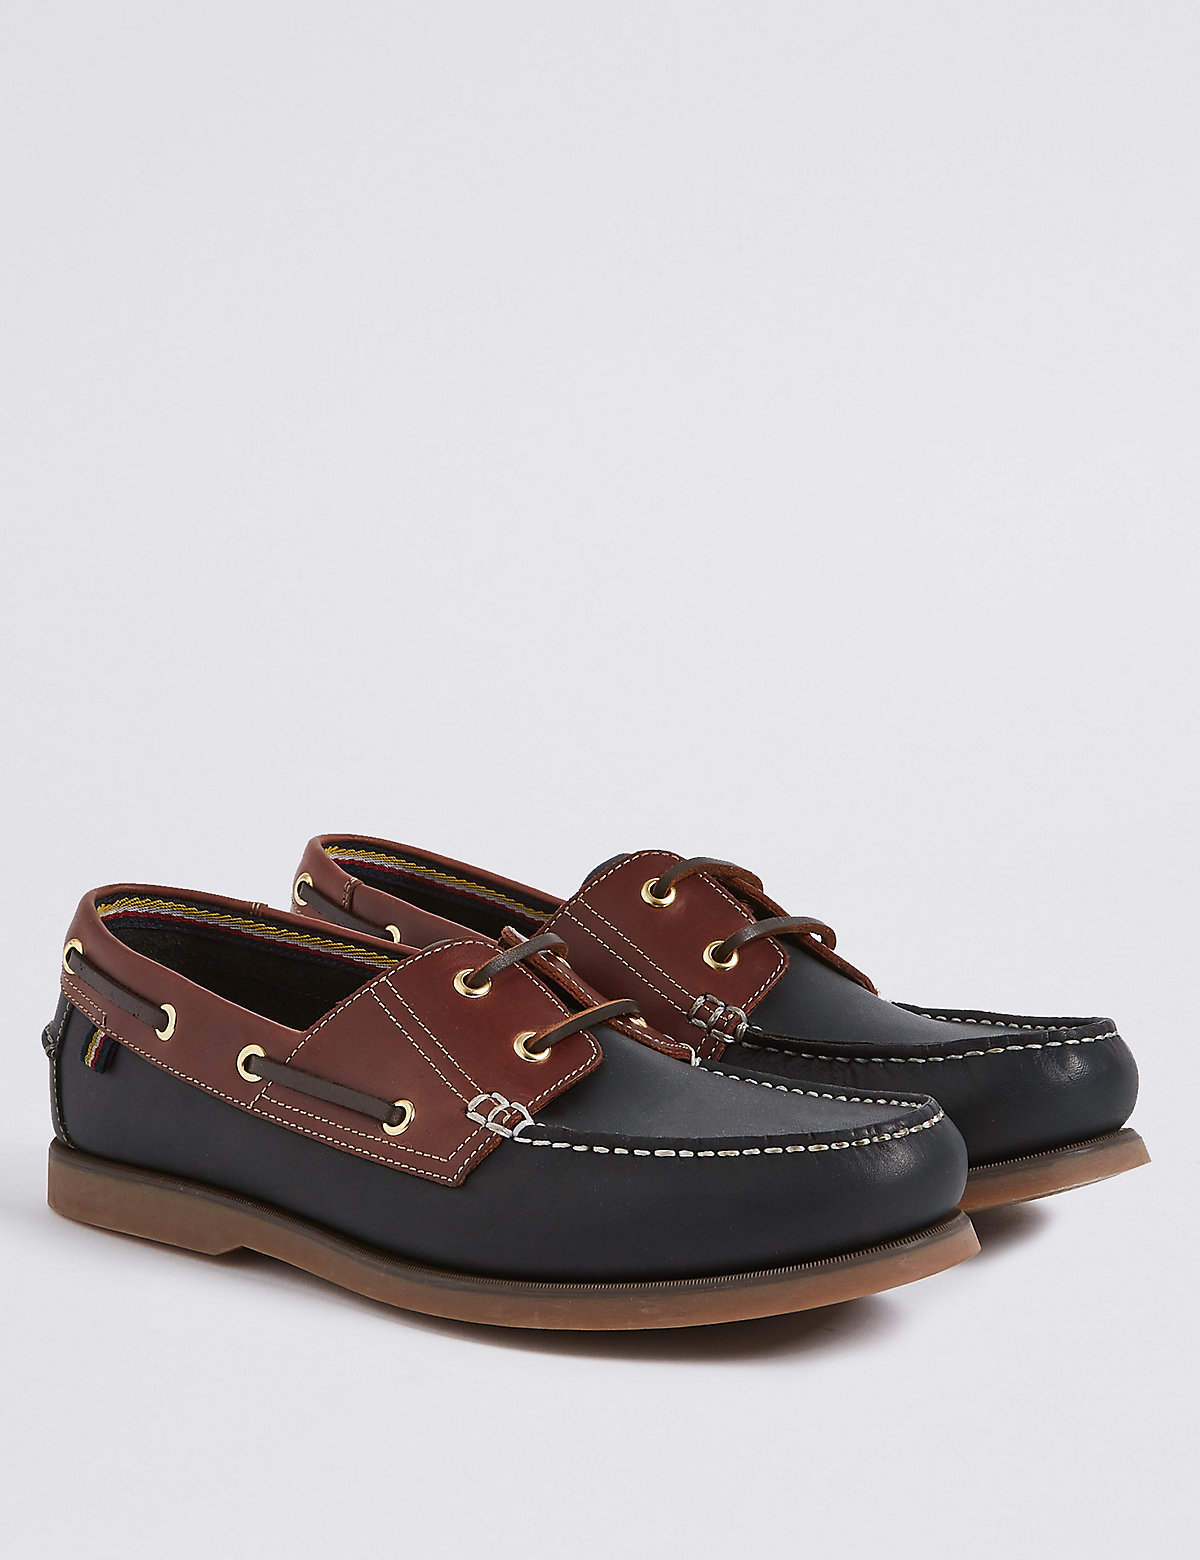 Marks & Spencer Navy Mix Big & Tall Leather Lace-up Boat Shoes